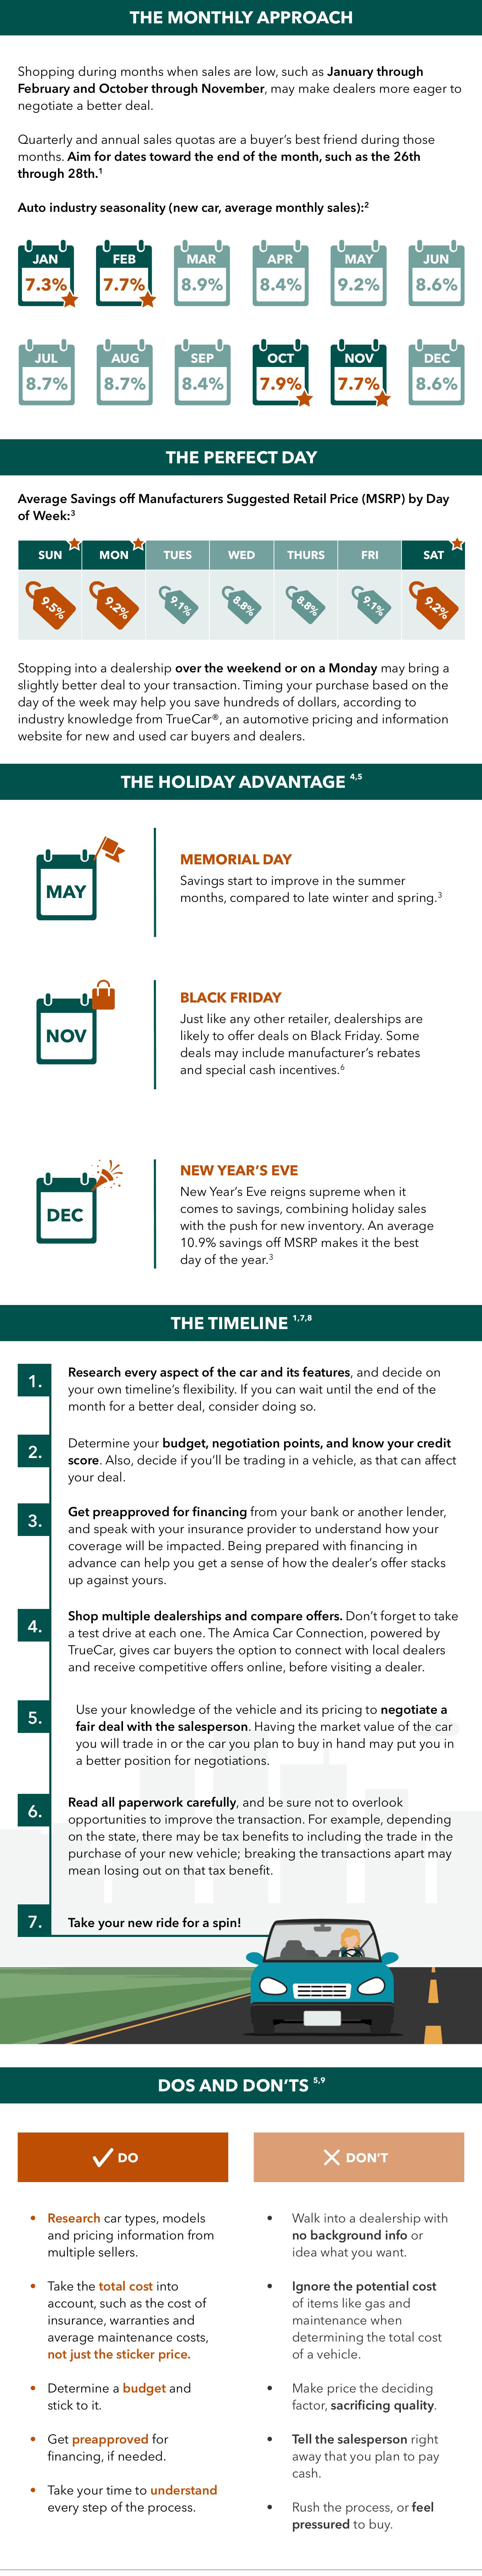 best time to buy a car infographic